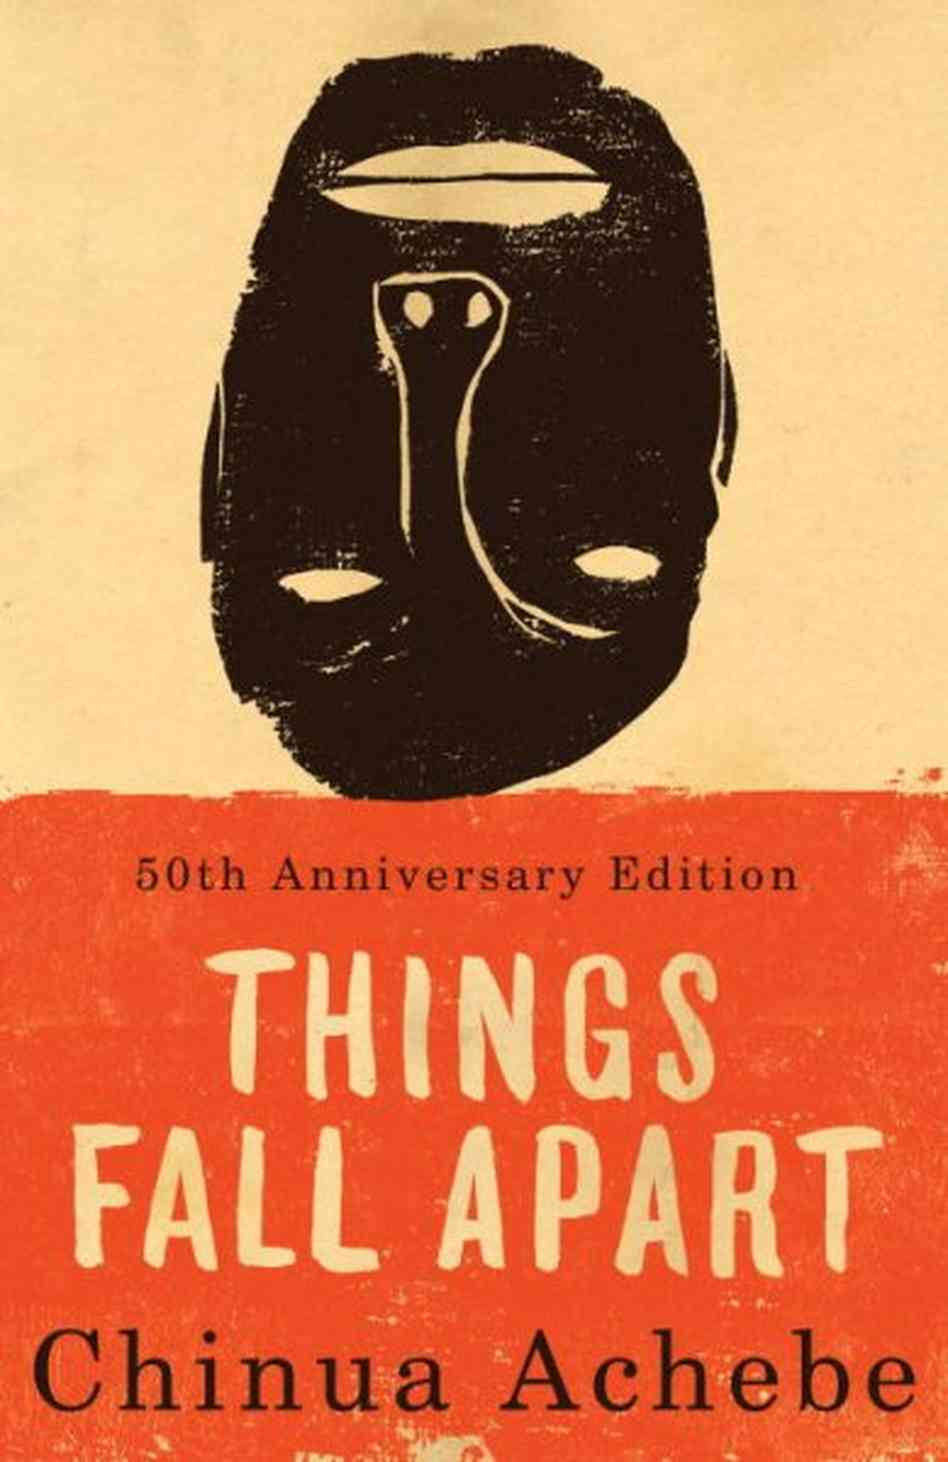 things fall apart by chinua achebe 3 essay Things fall apart is an english novel by the nigerian author chinua achebe  which was  the third part deals with okonkwo returning to his village and his.